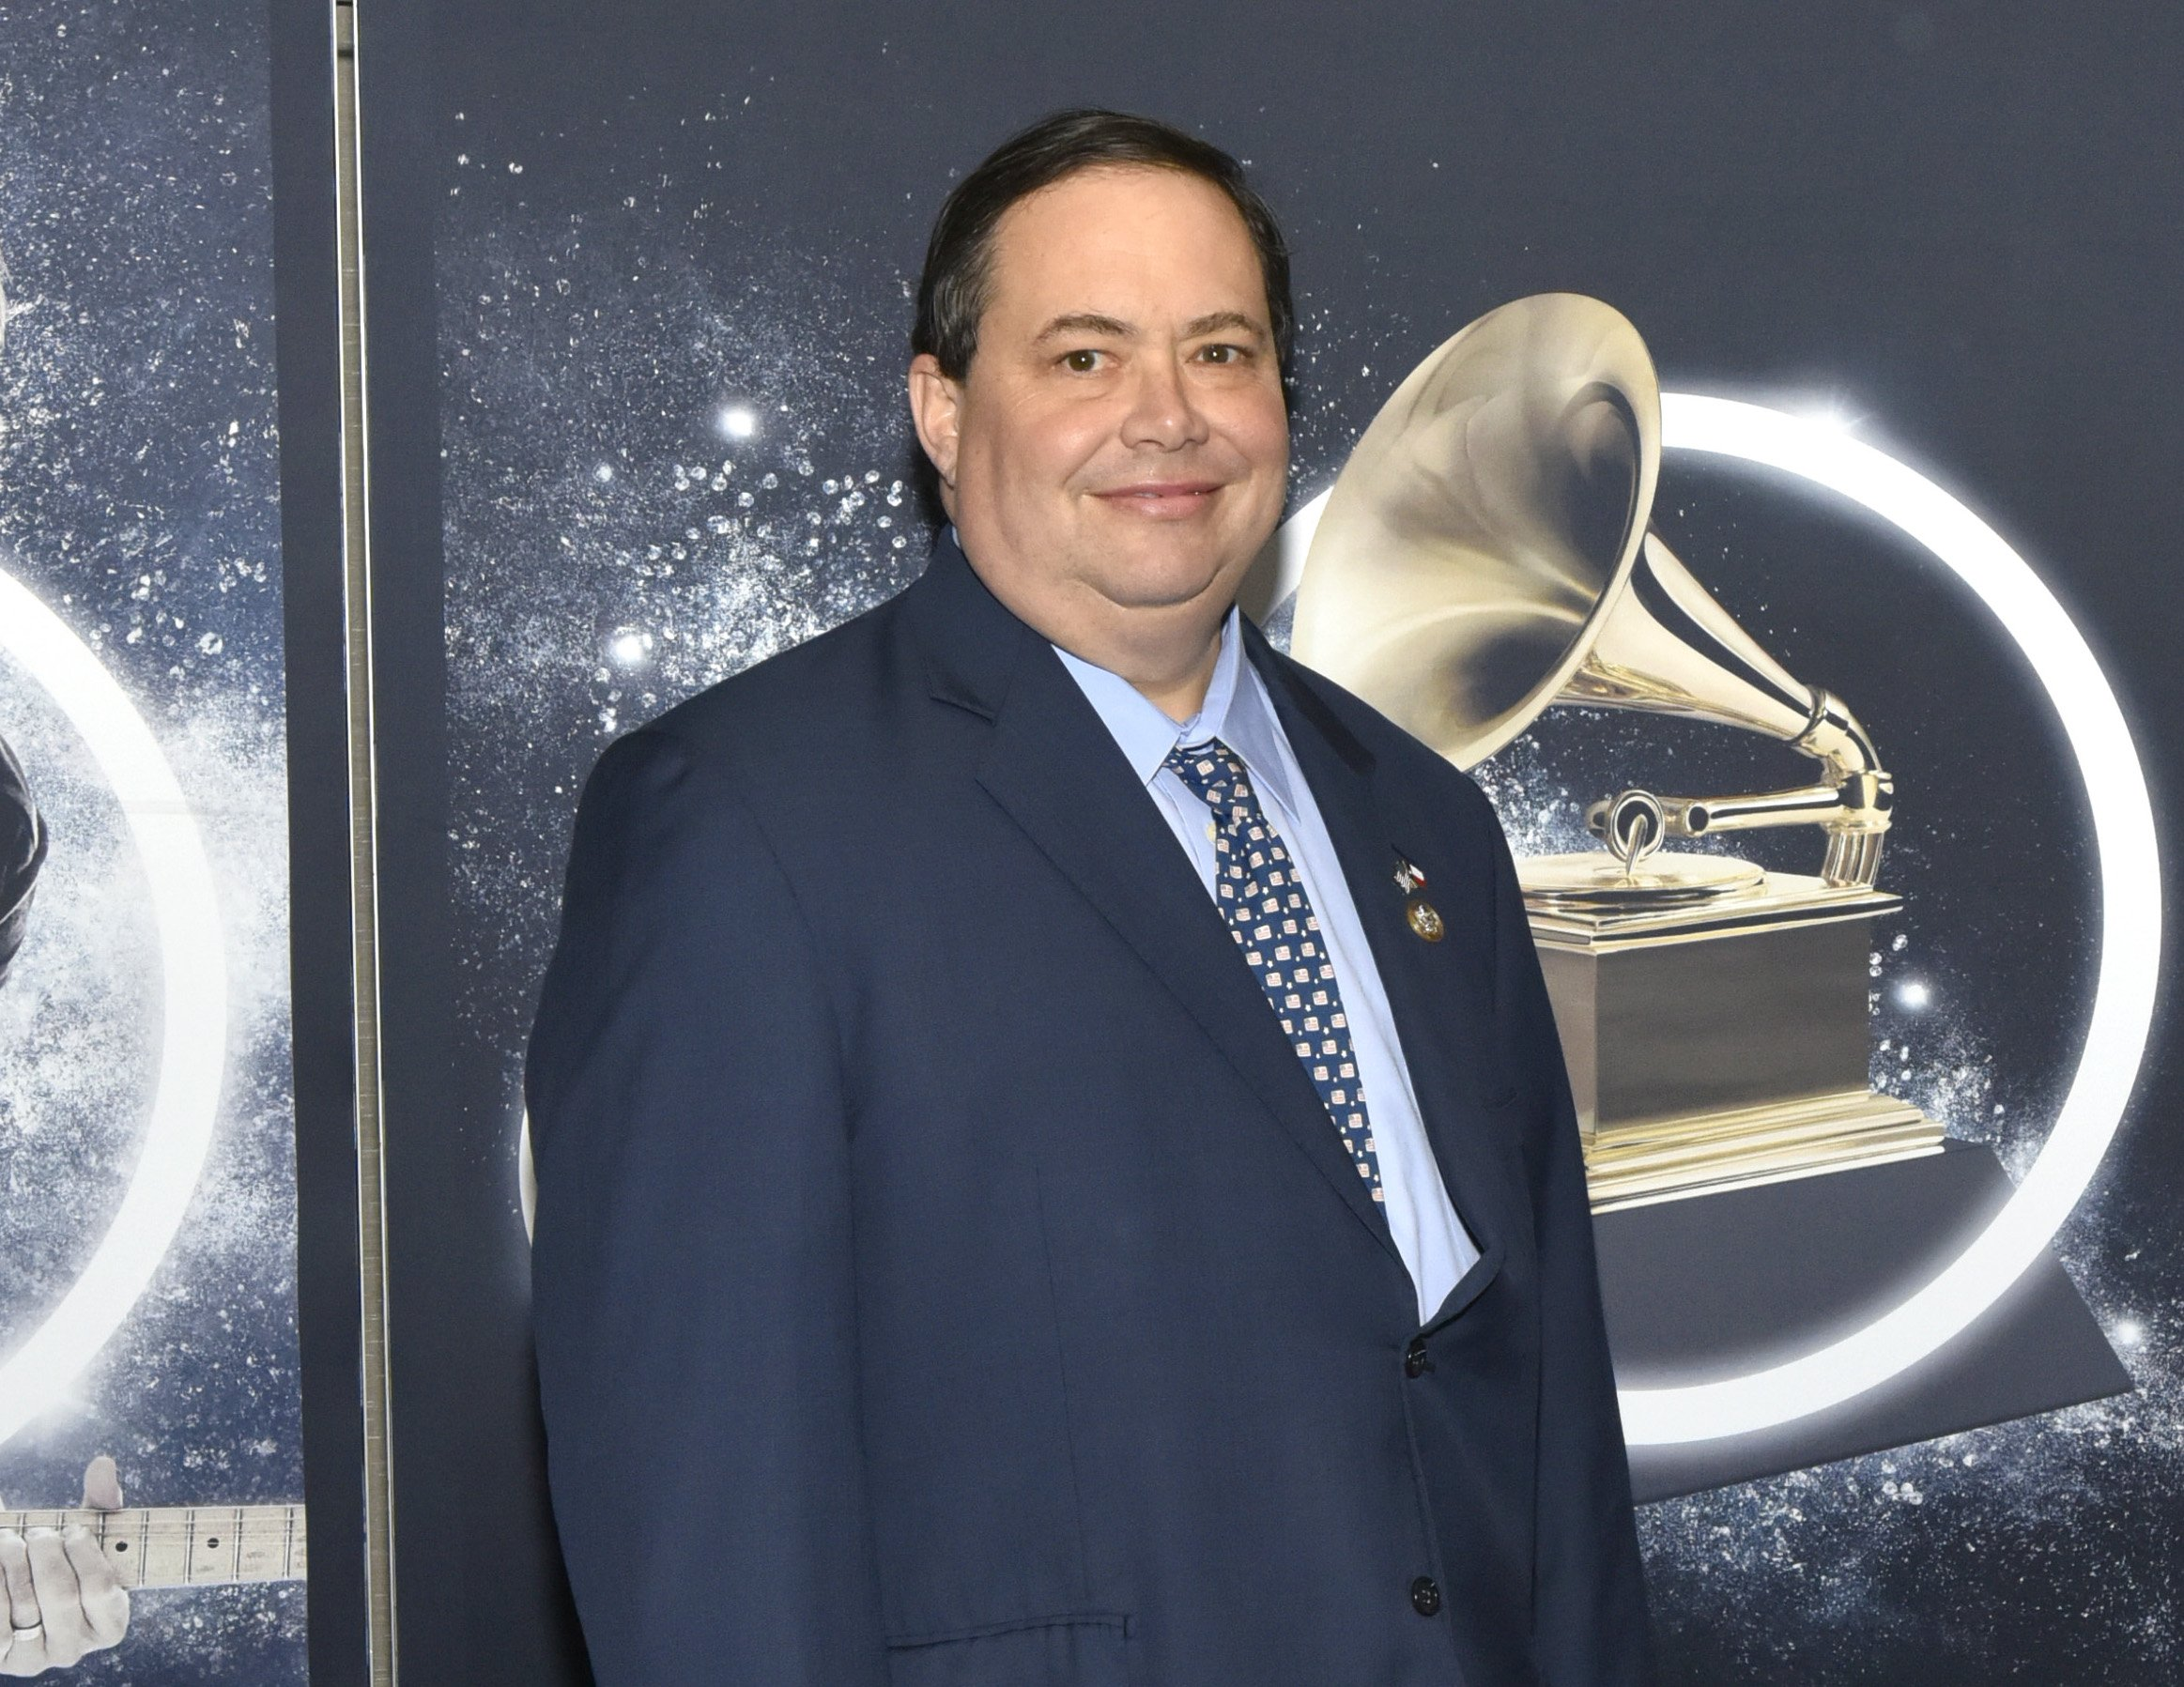 U.S. Representative for Texas's 27th congressional district Blake Farenthold attends the 60th Annual GRAMMY Awards